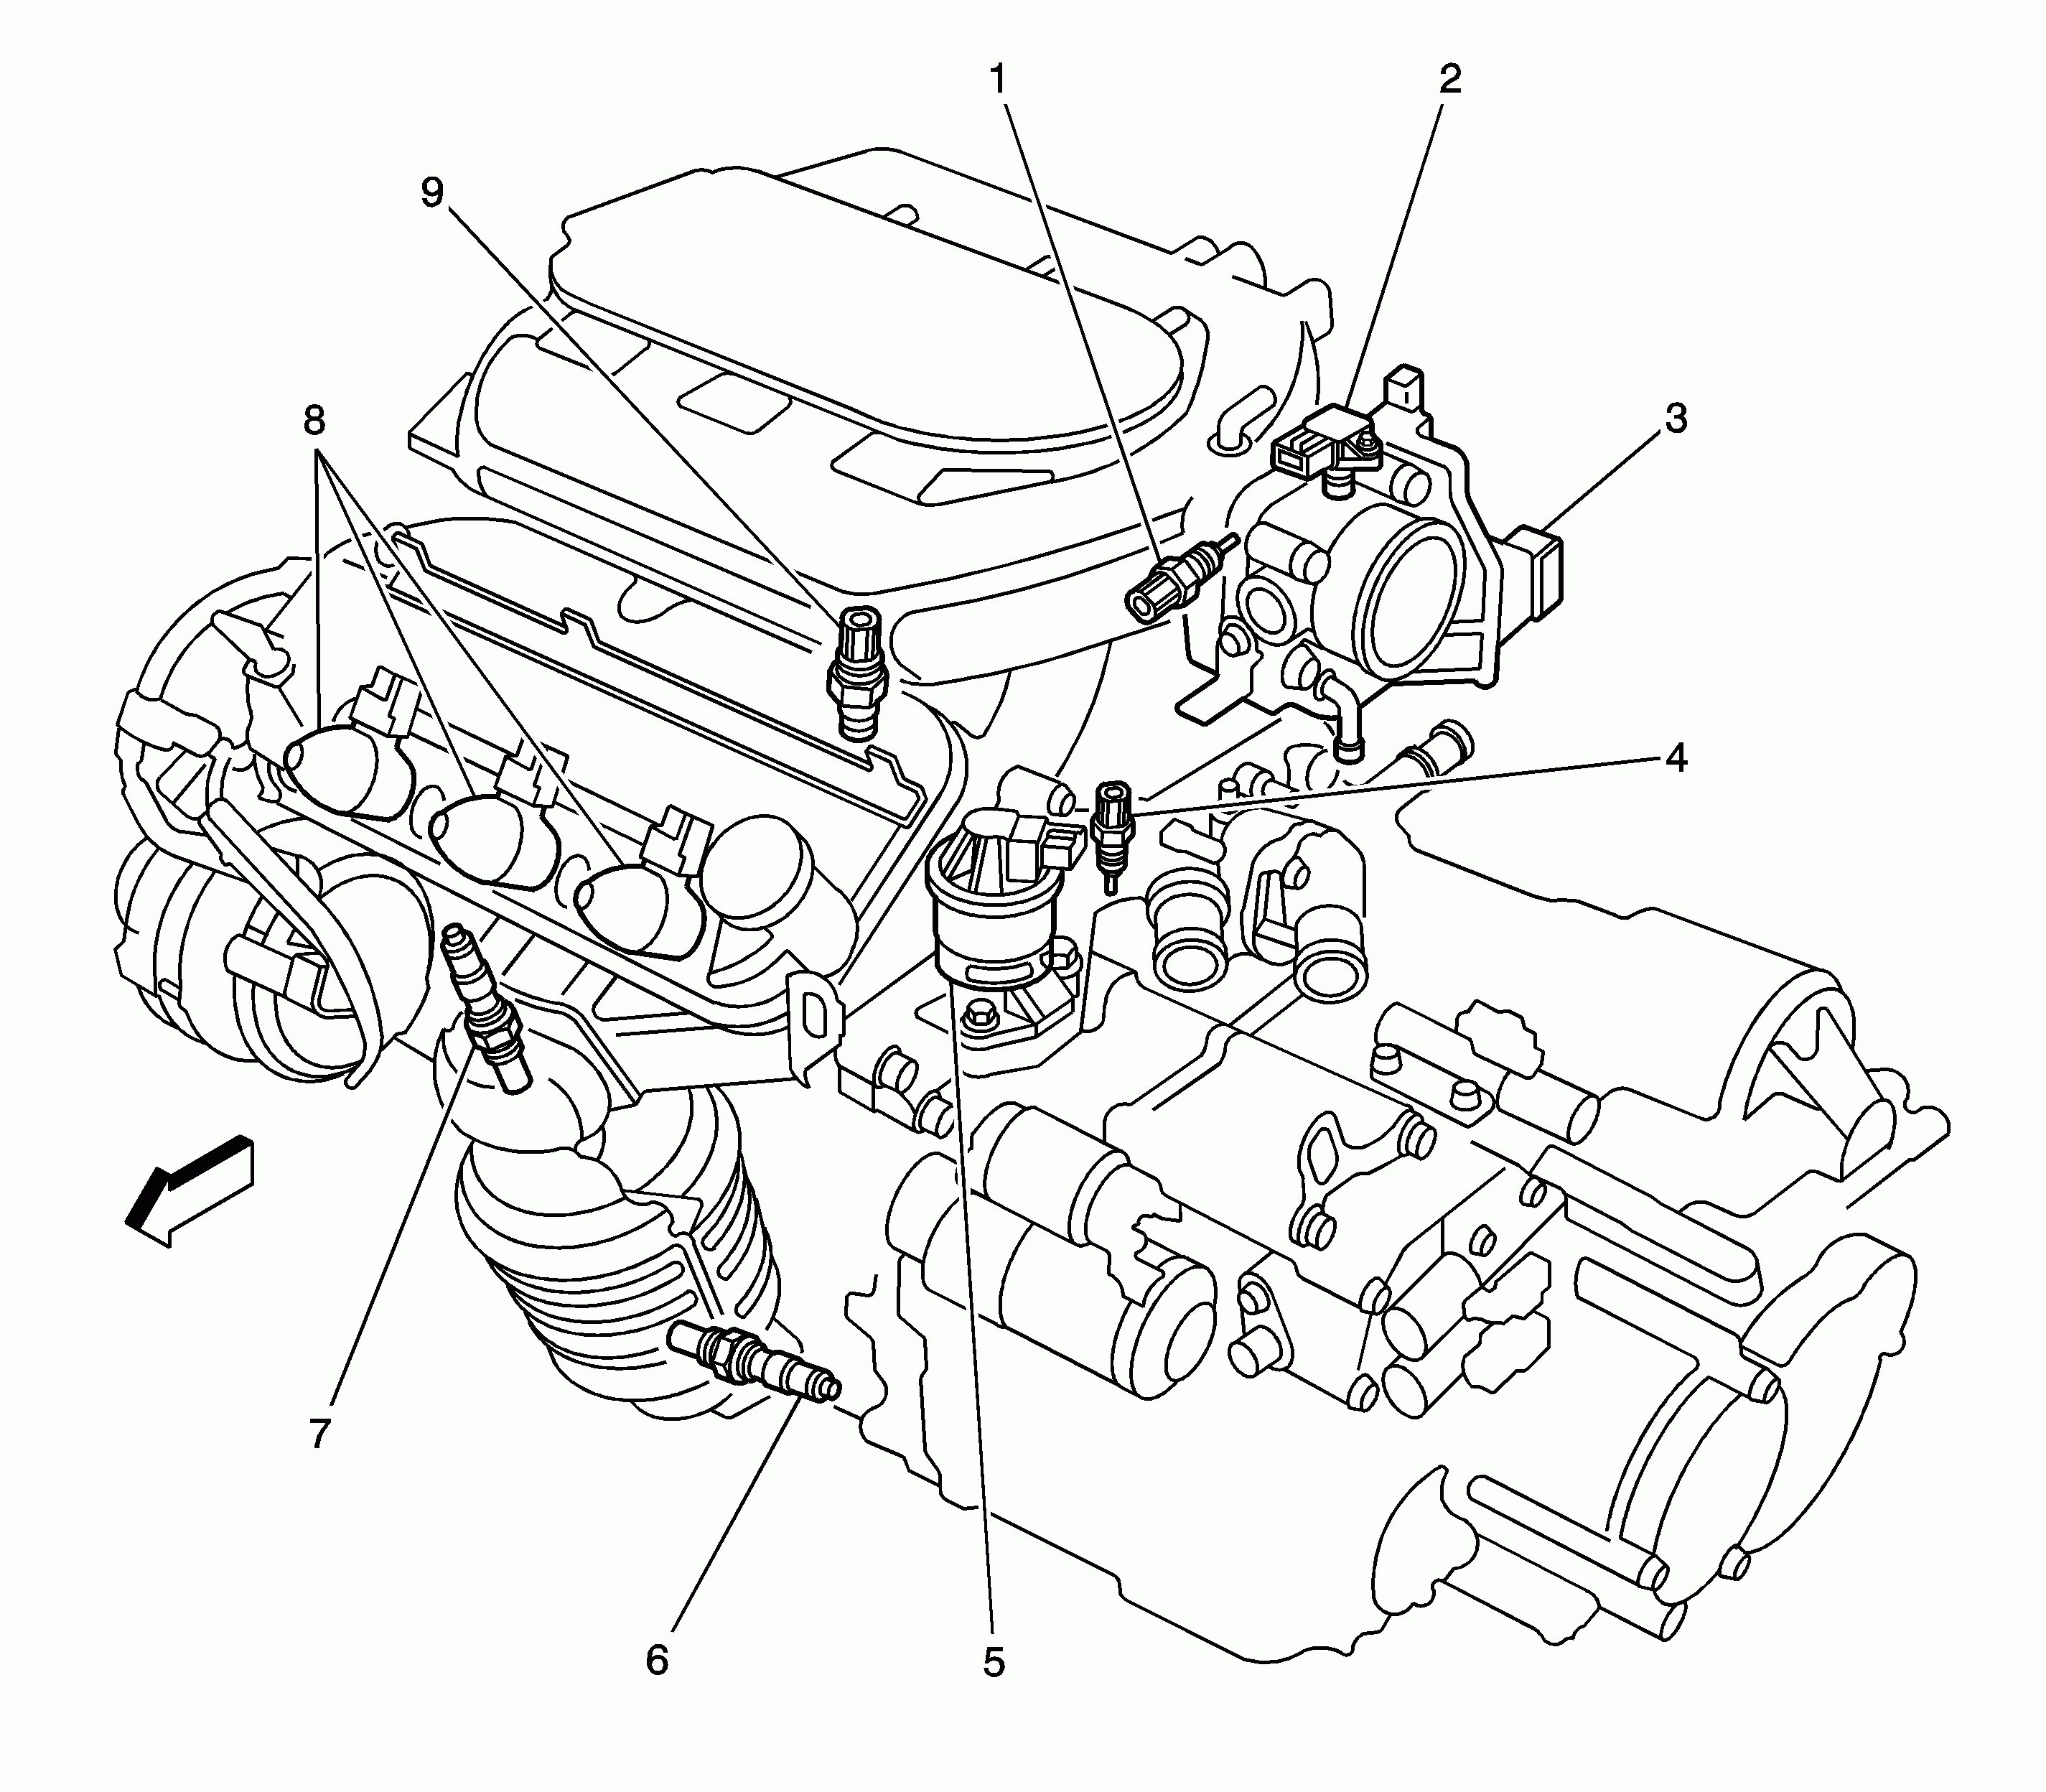 ion engine diagram my wiring diagram rh detoxicrecenze com 2003 pontiac  grand am engine parts diagram